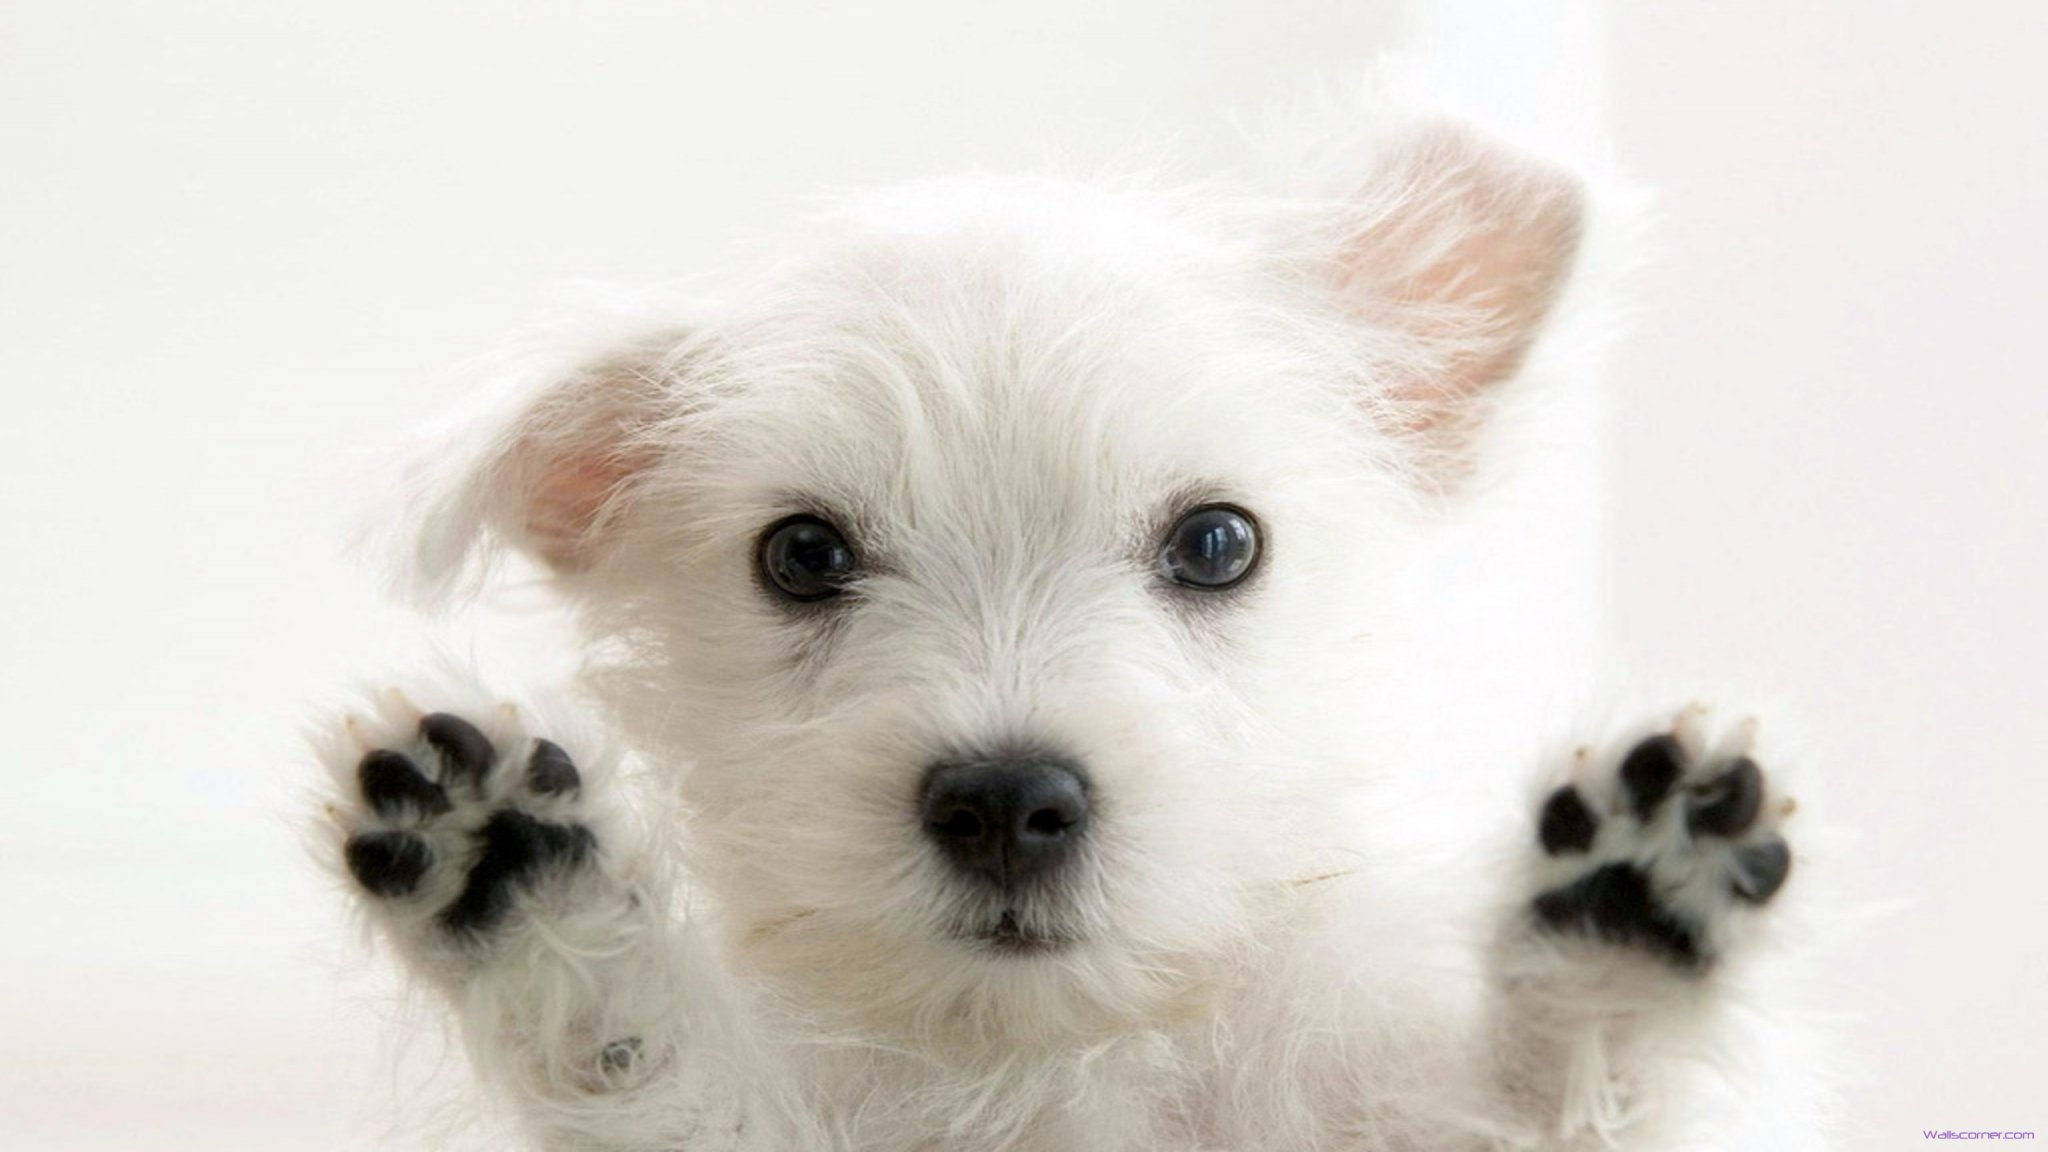 of cute white puppy beauty cute white puppy hd wallpaper wallpaper 2048x1152